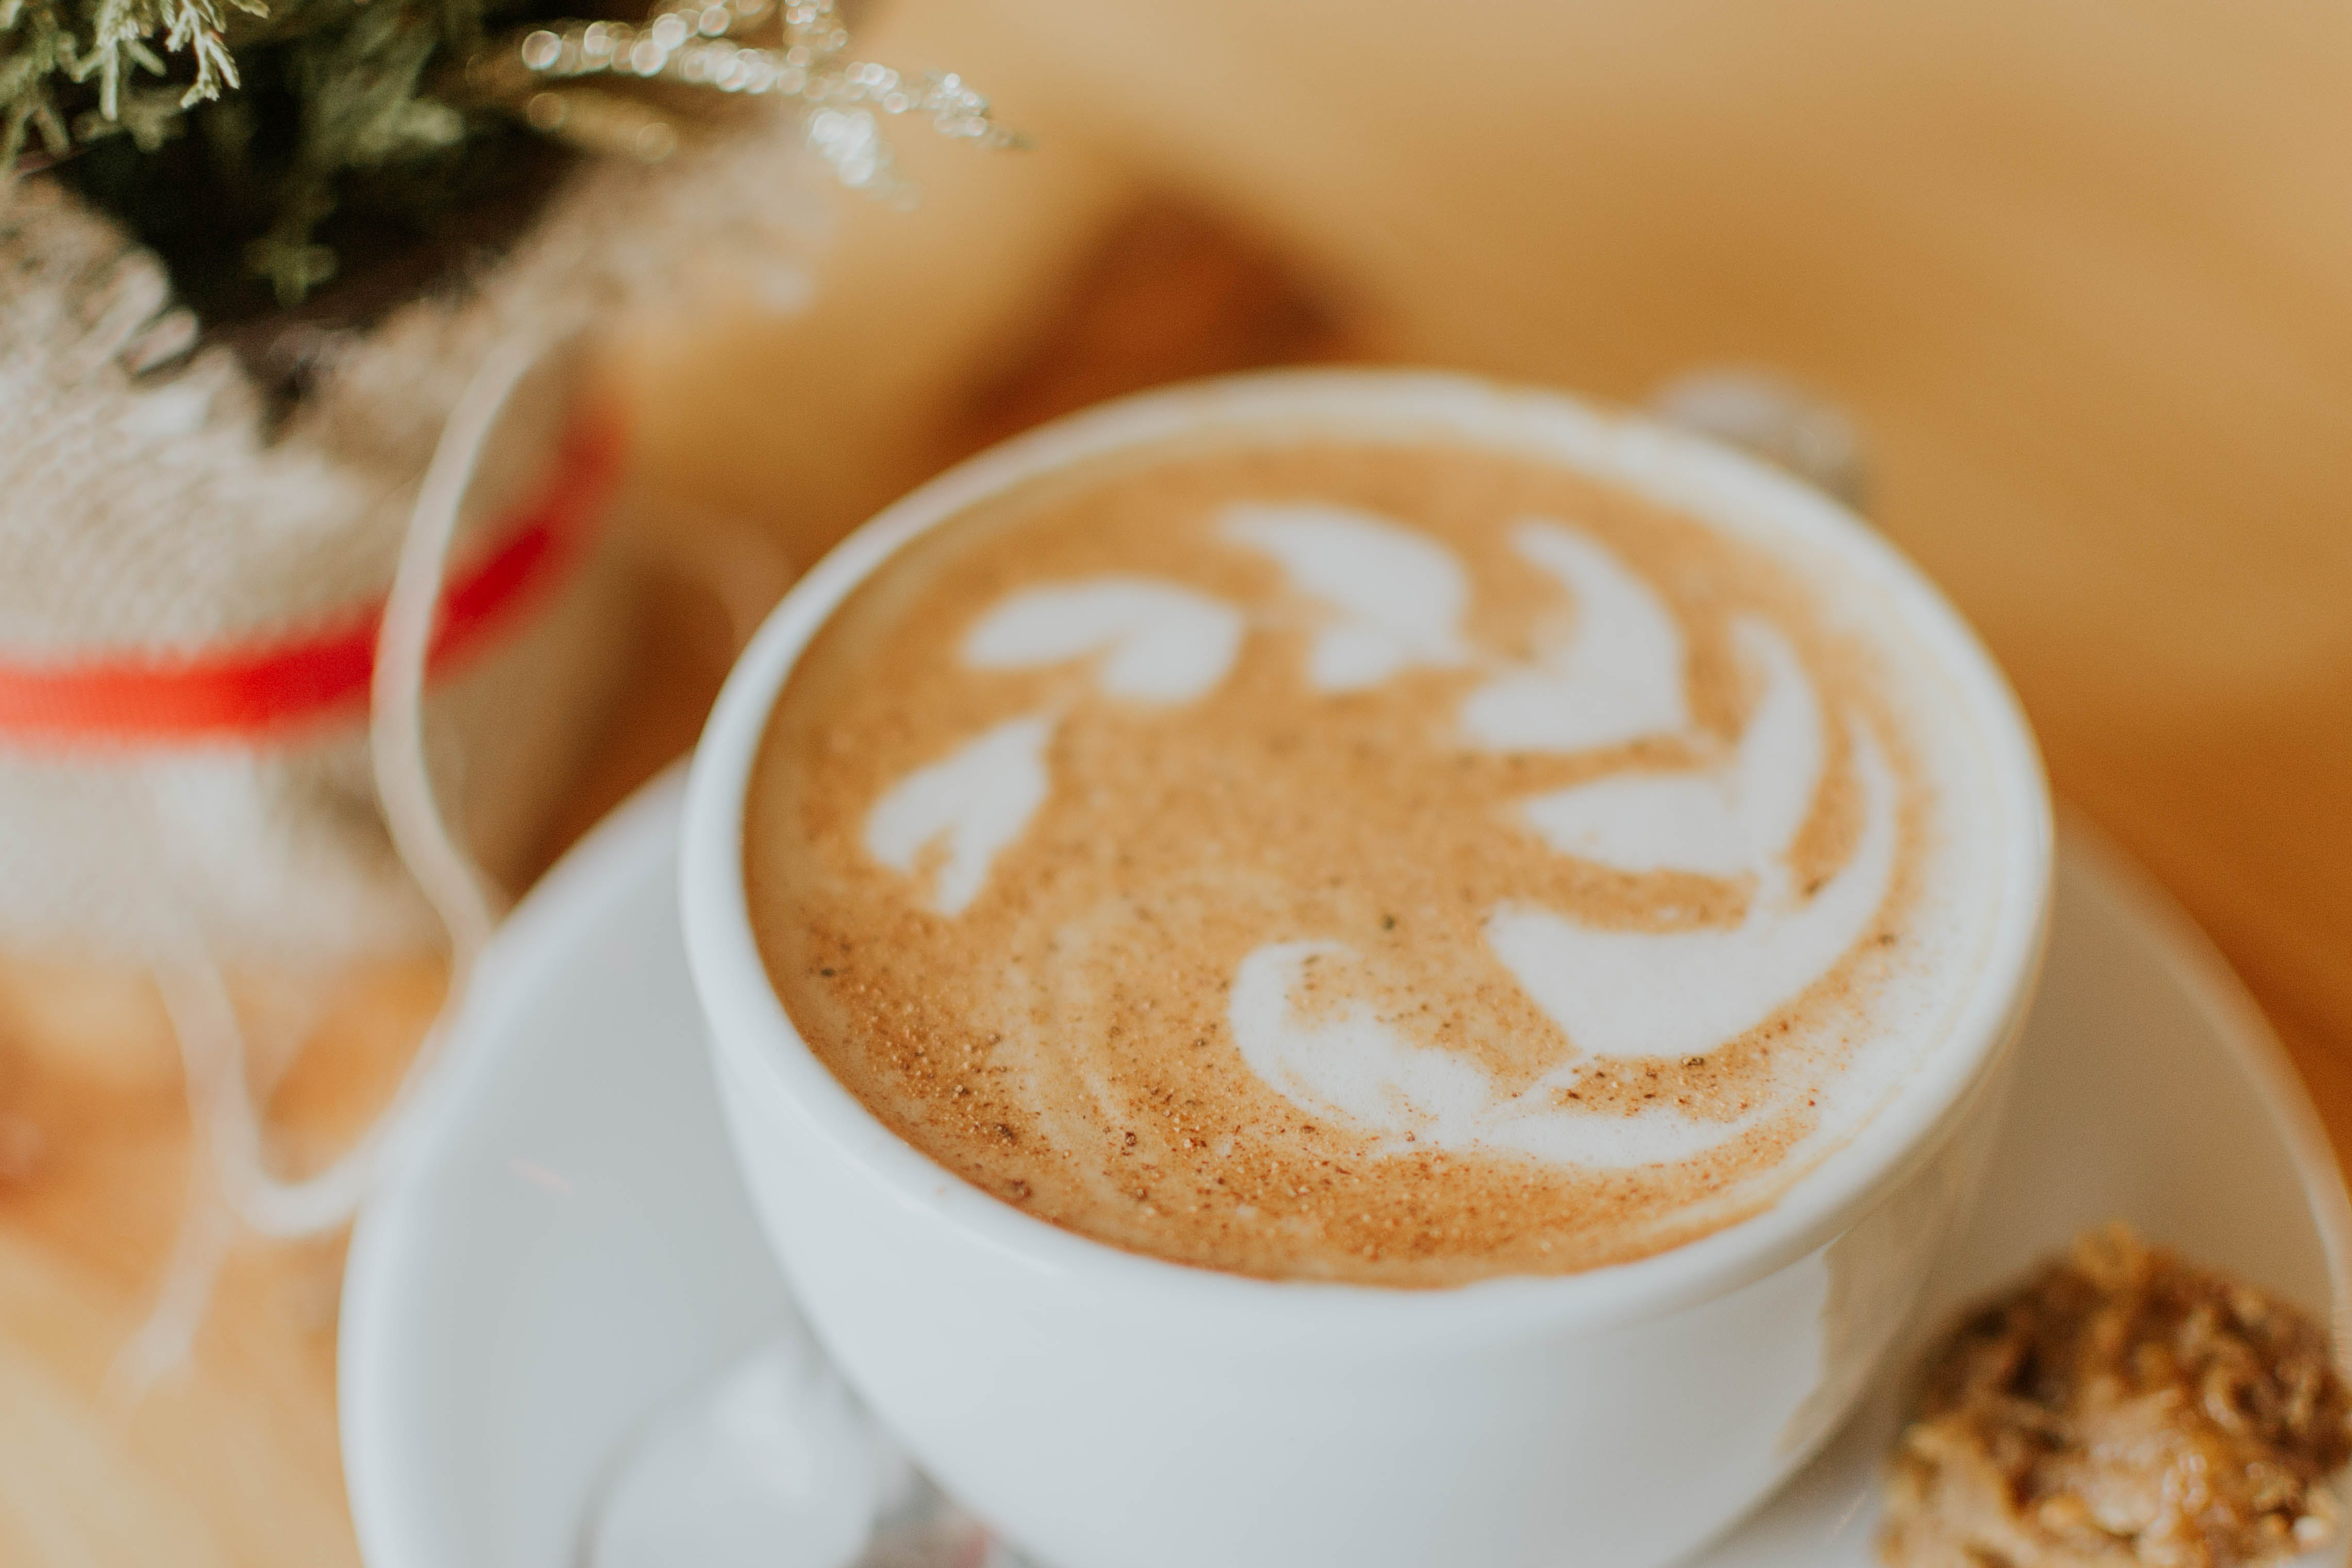 White Ceramic Cup With Coffee Latte